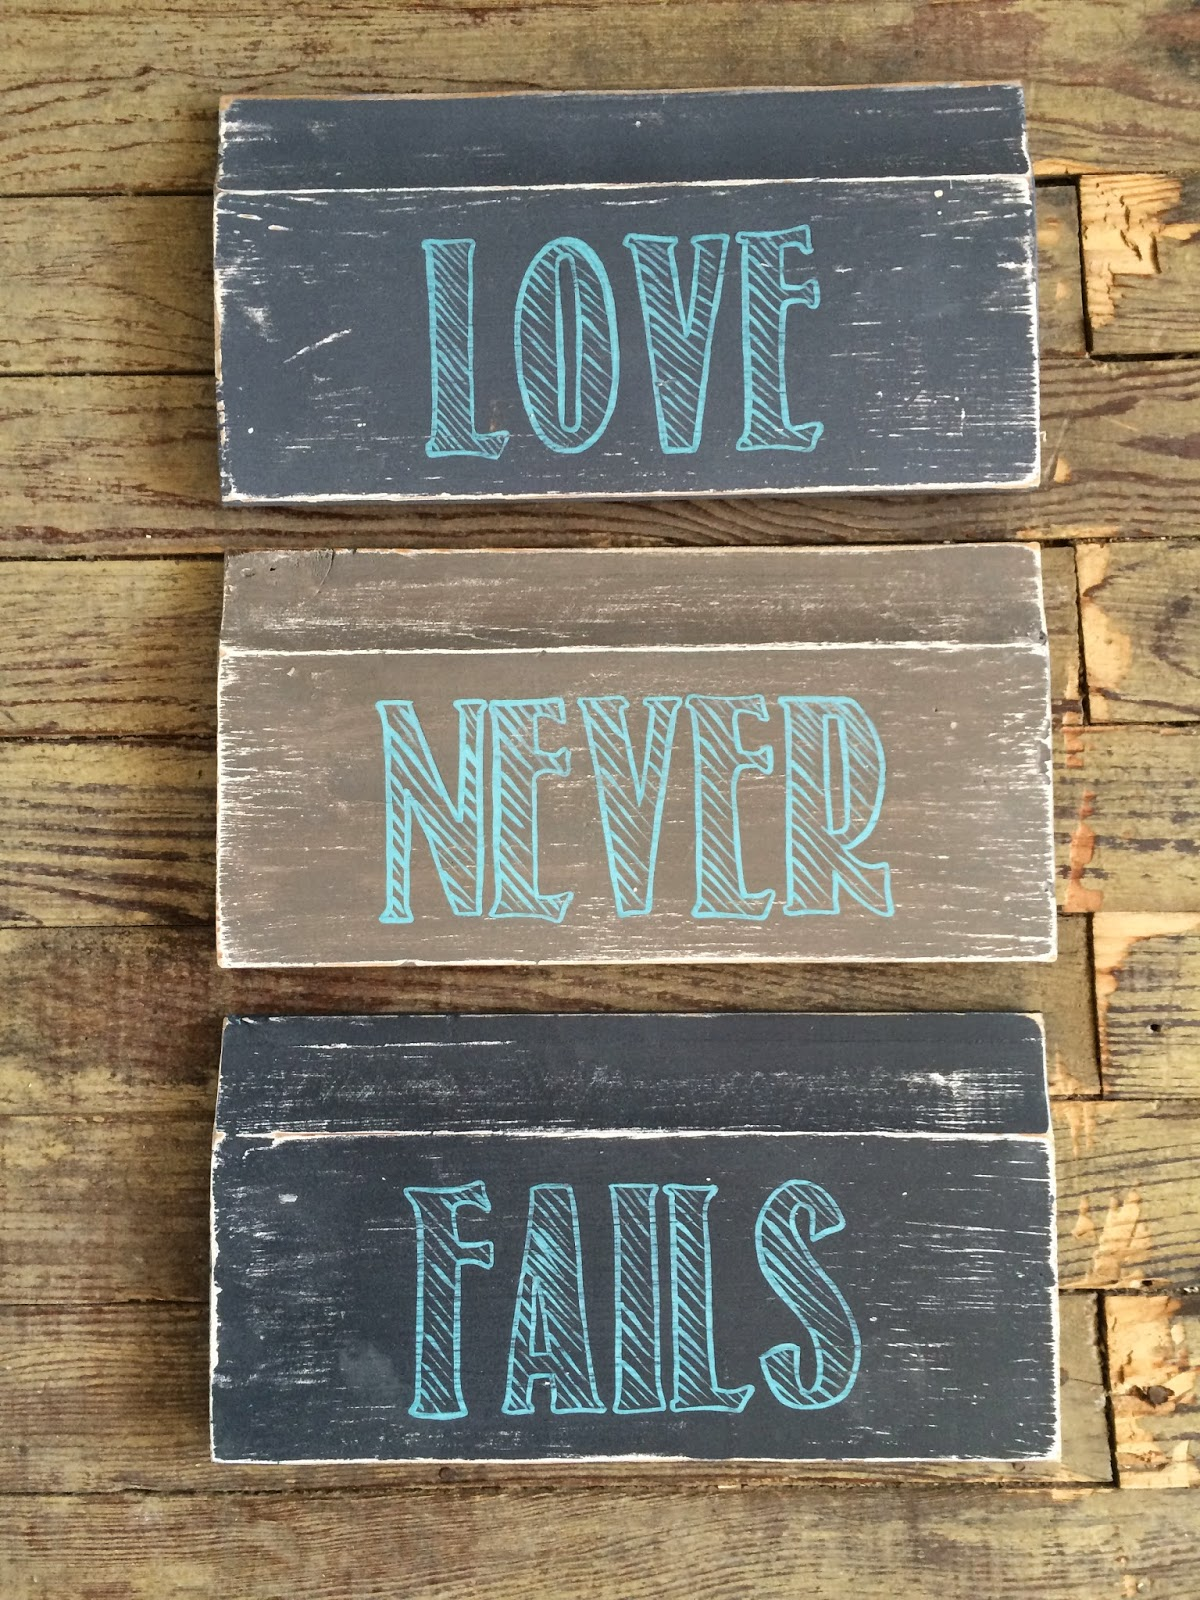 https://www.etsy.com/listing/212608549/country-rustic-sign-hand-painted?ref=shop_home_active_12